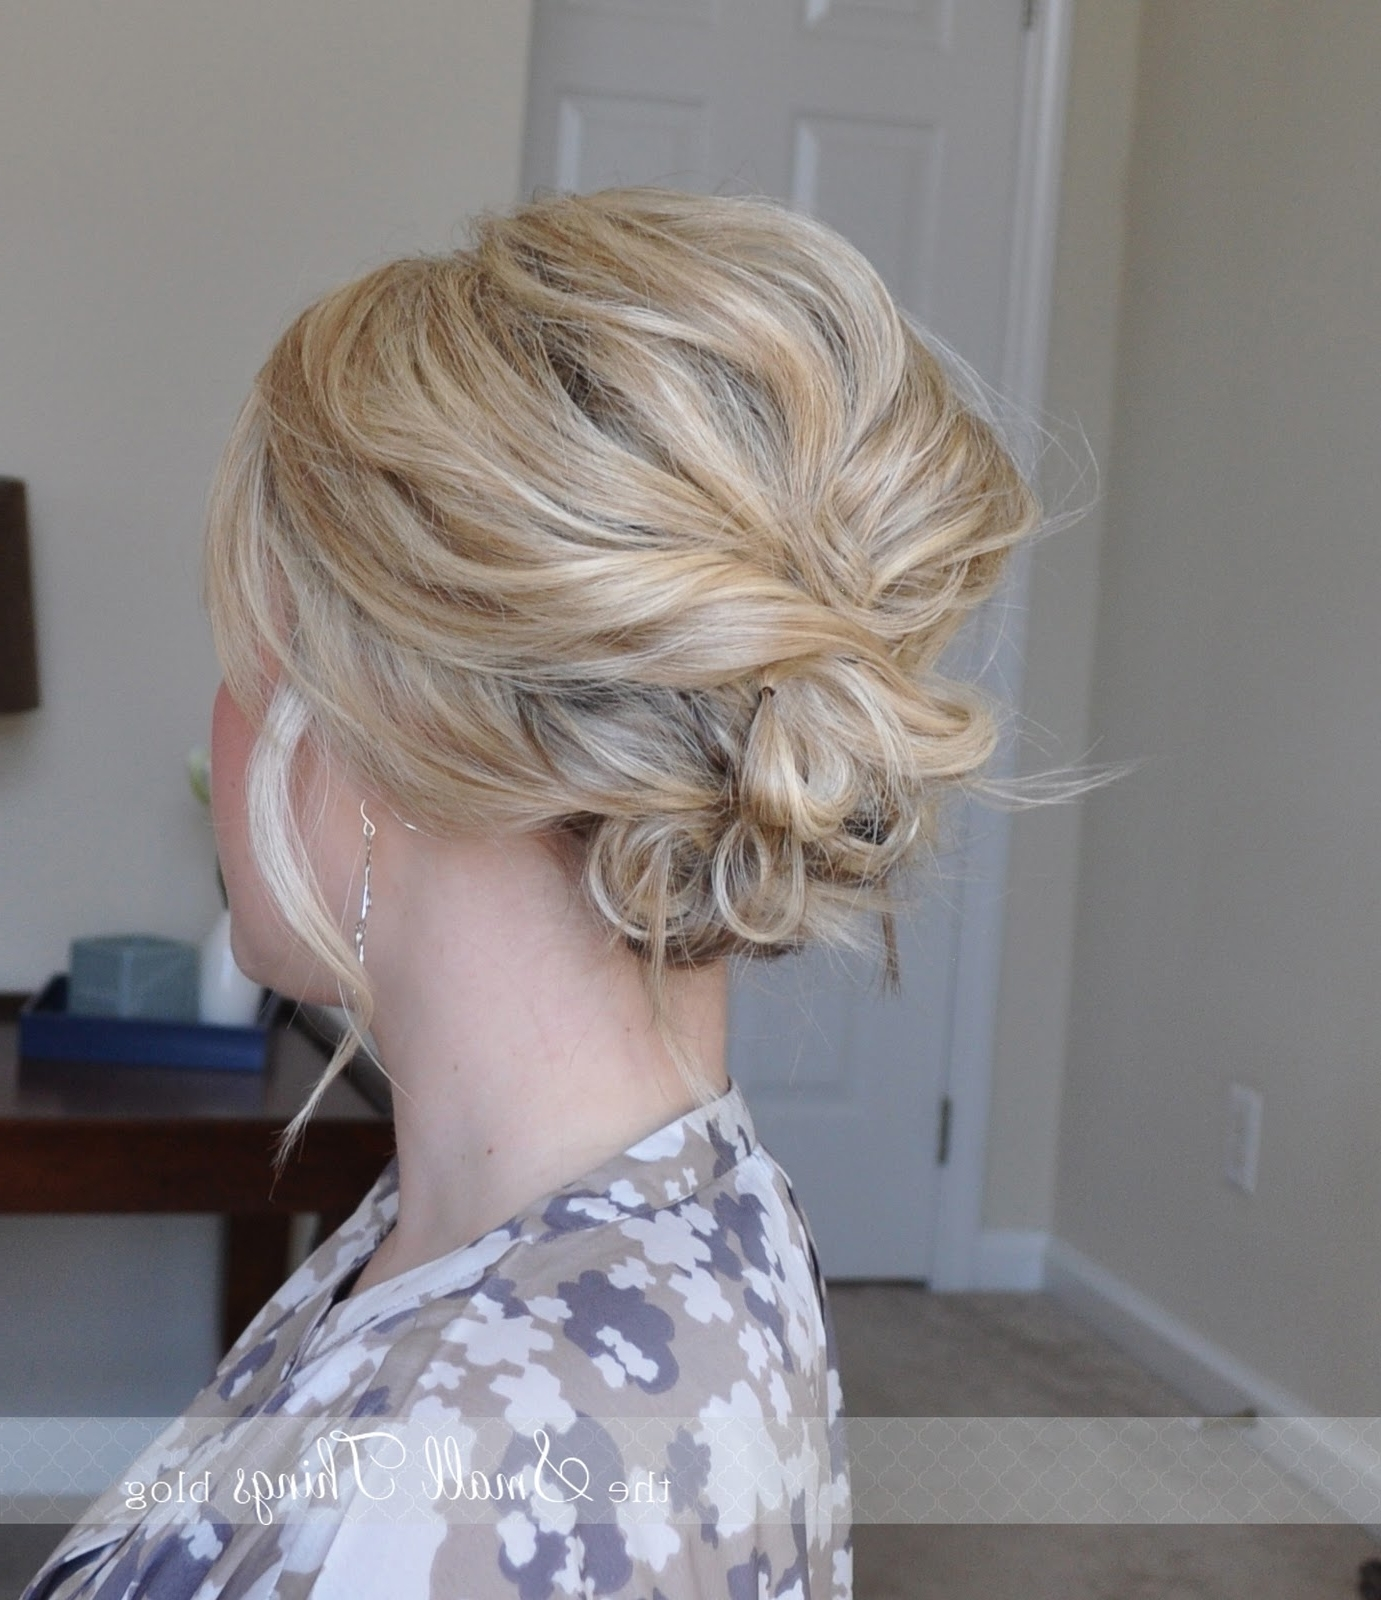 Beach Wedding Hairstyles For Medium Length Hair – Hairstyle For Inside Latest Beach Wedding Hairstyles For Short Hair (View 13 of 15)